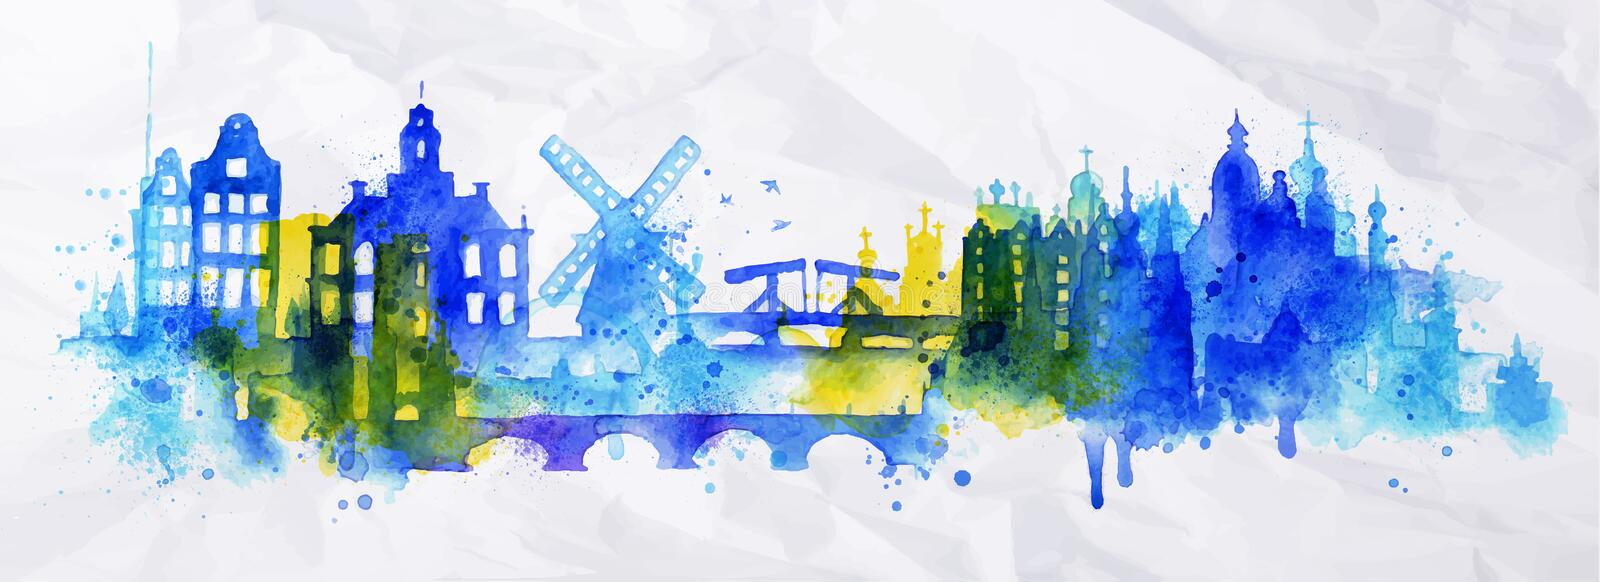 Silhouette overlay city Amsterdam. With splashes of watercolor drops streaks landmarks in blue tones royalty free illustration